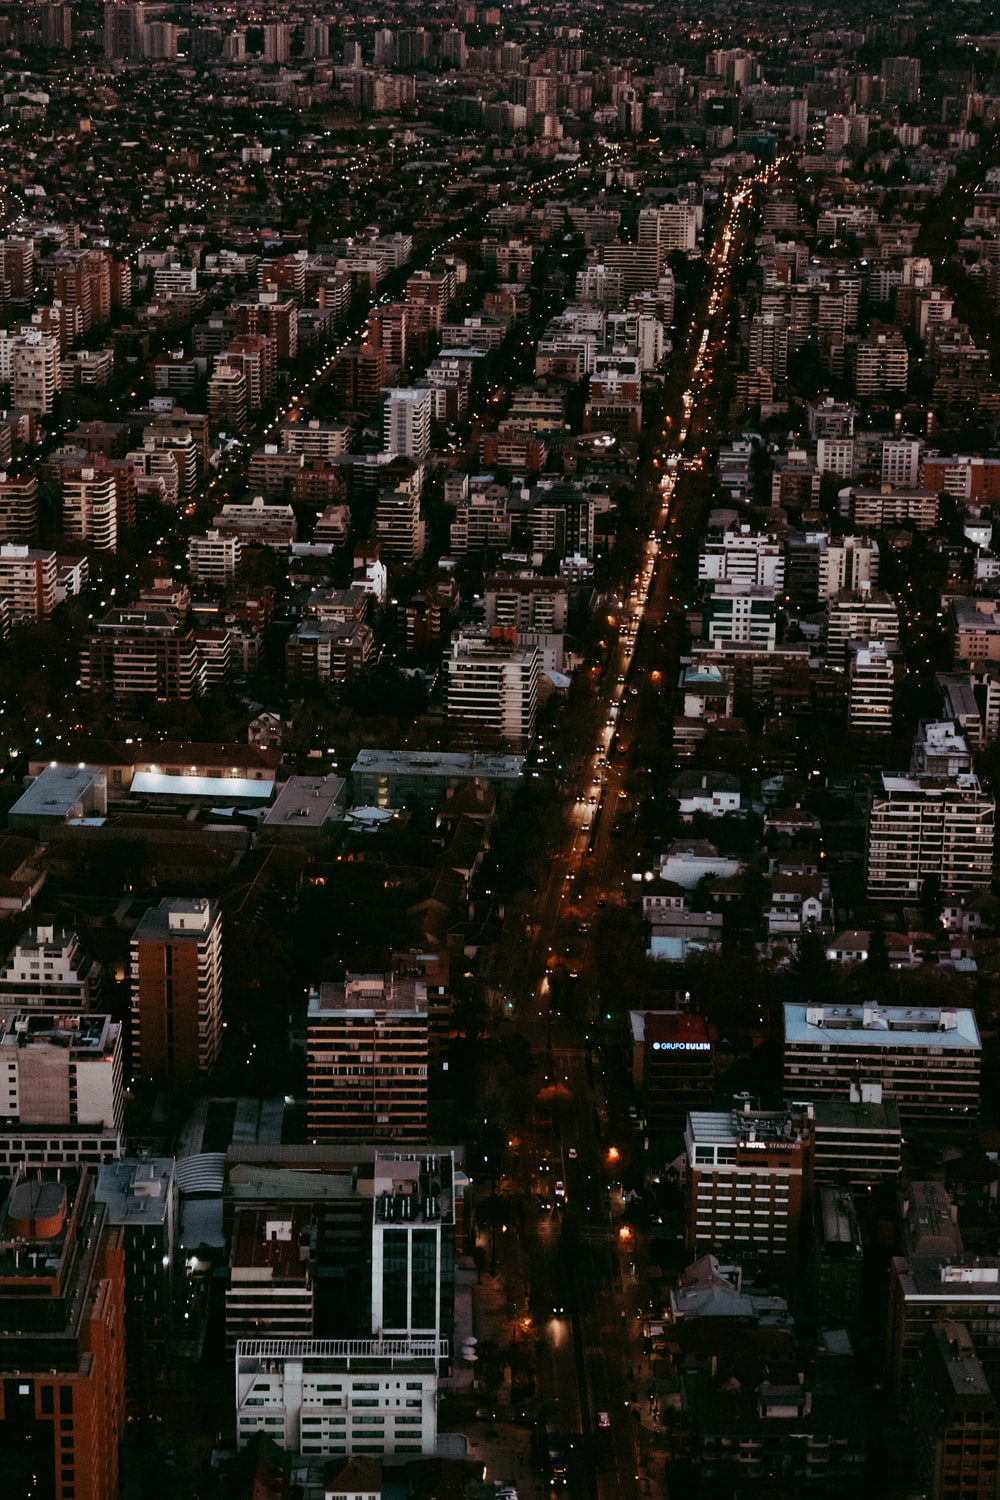 aerial photography of city with high-rise buildings during night time